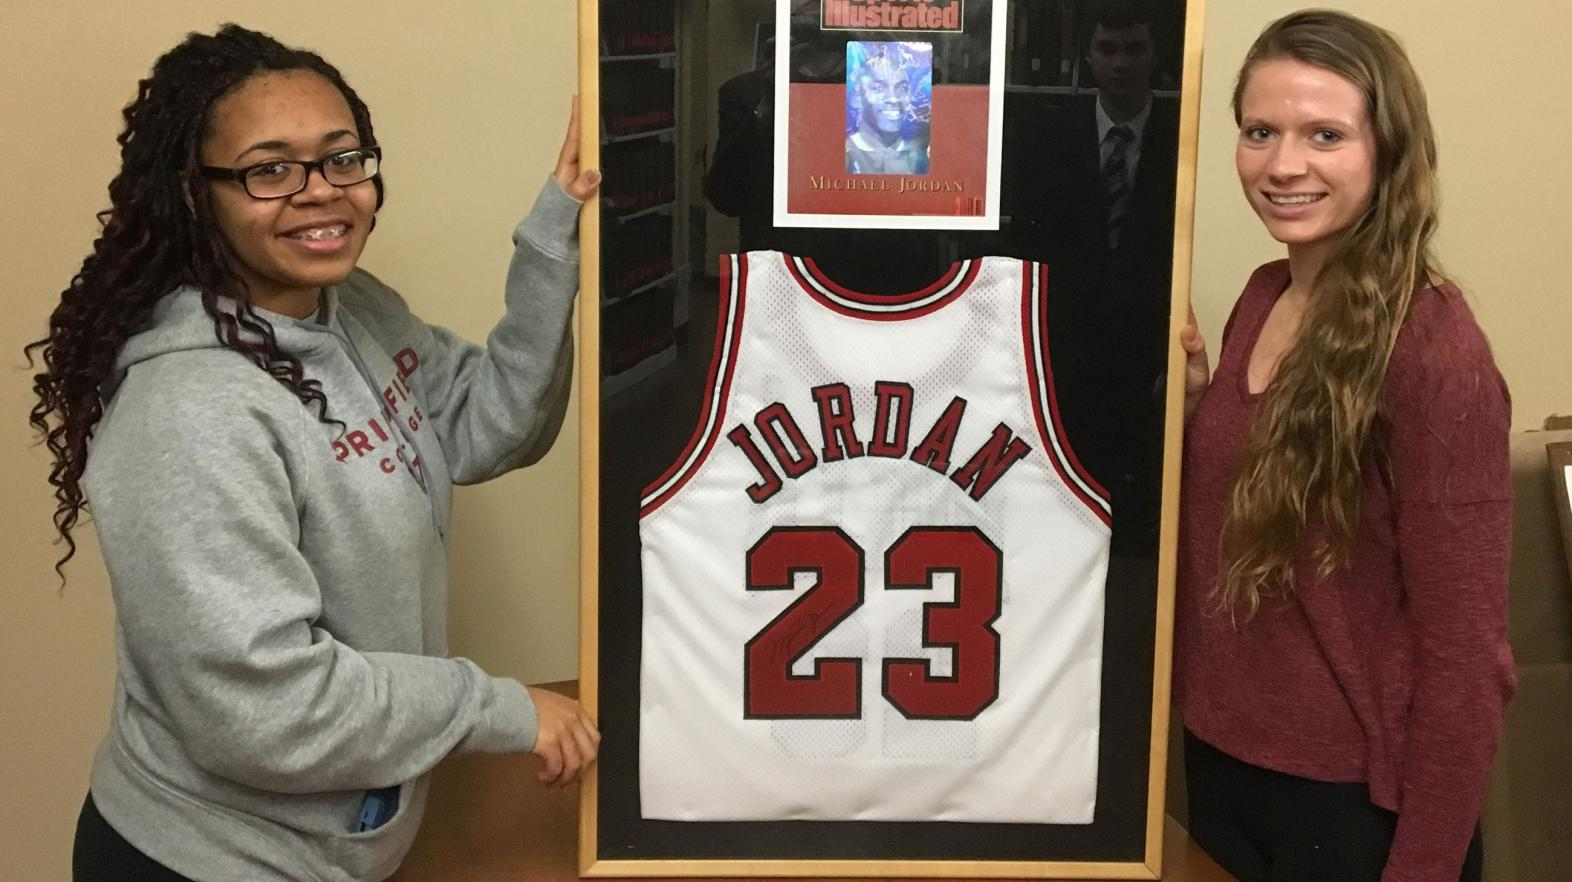 Students pose with a framed Michael Jordan Jersey, located in the Springfield College archives.